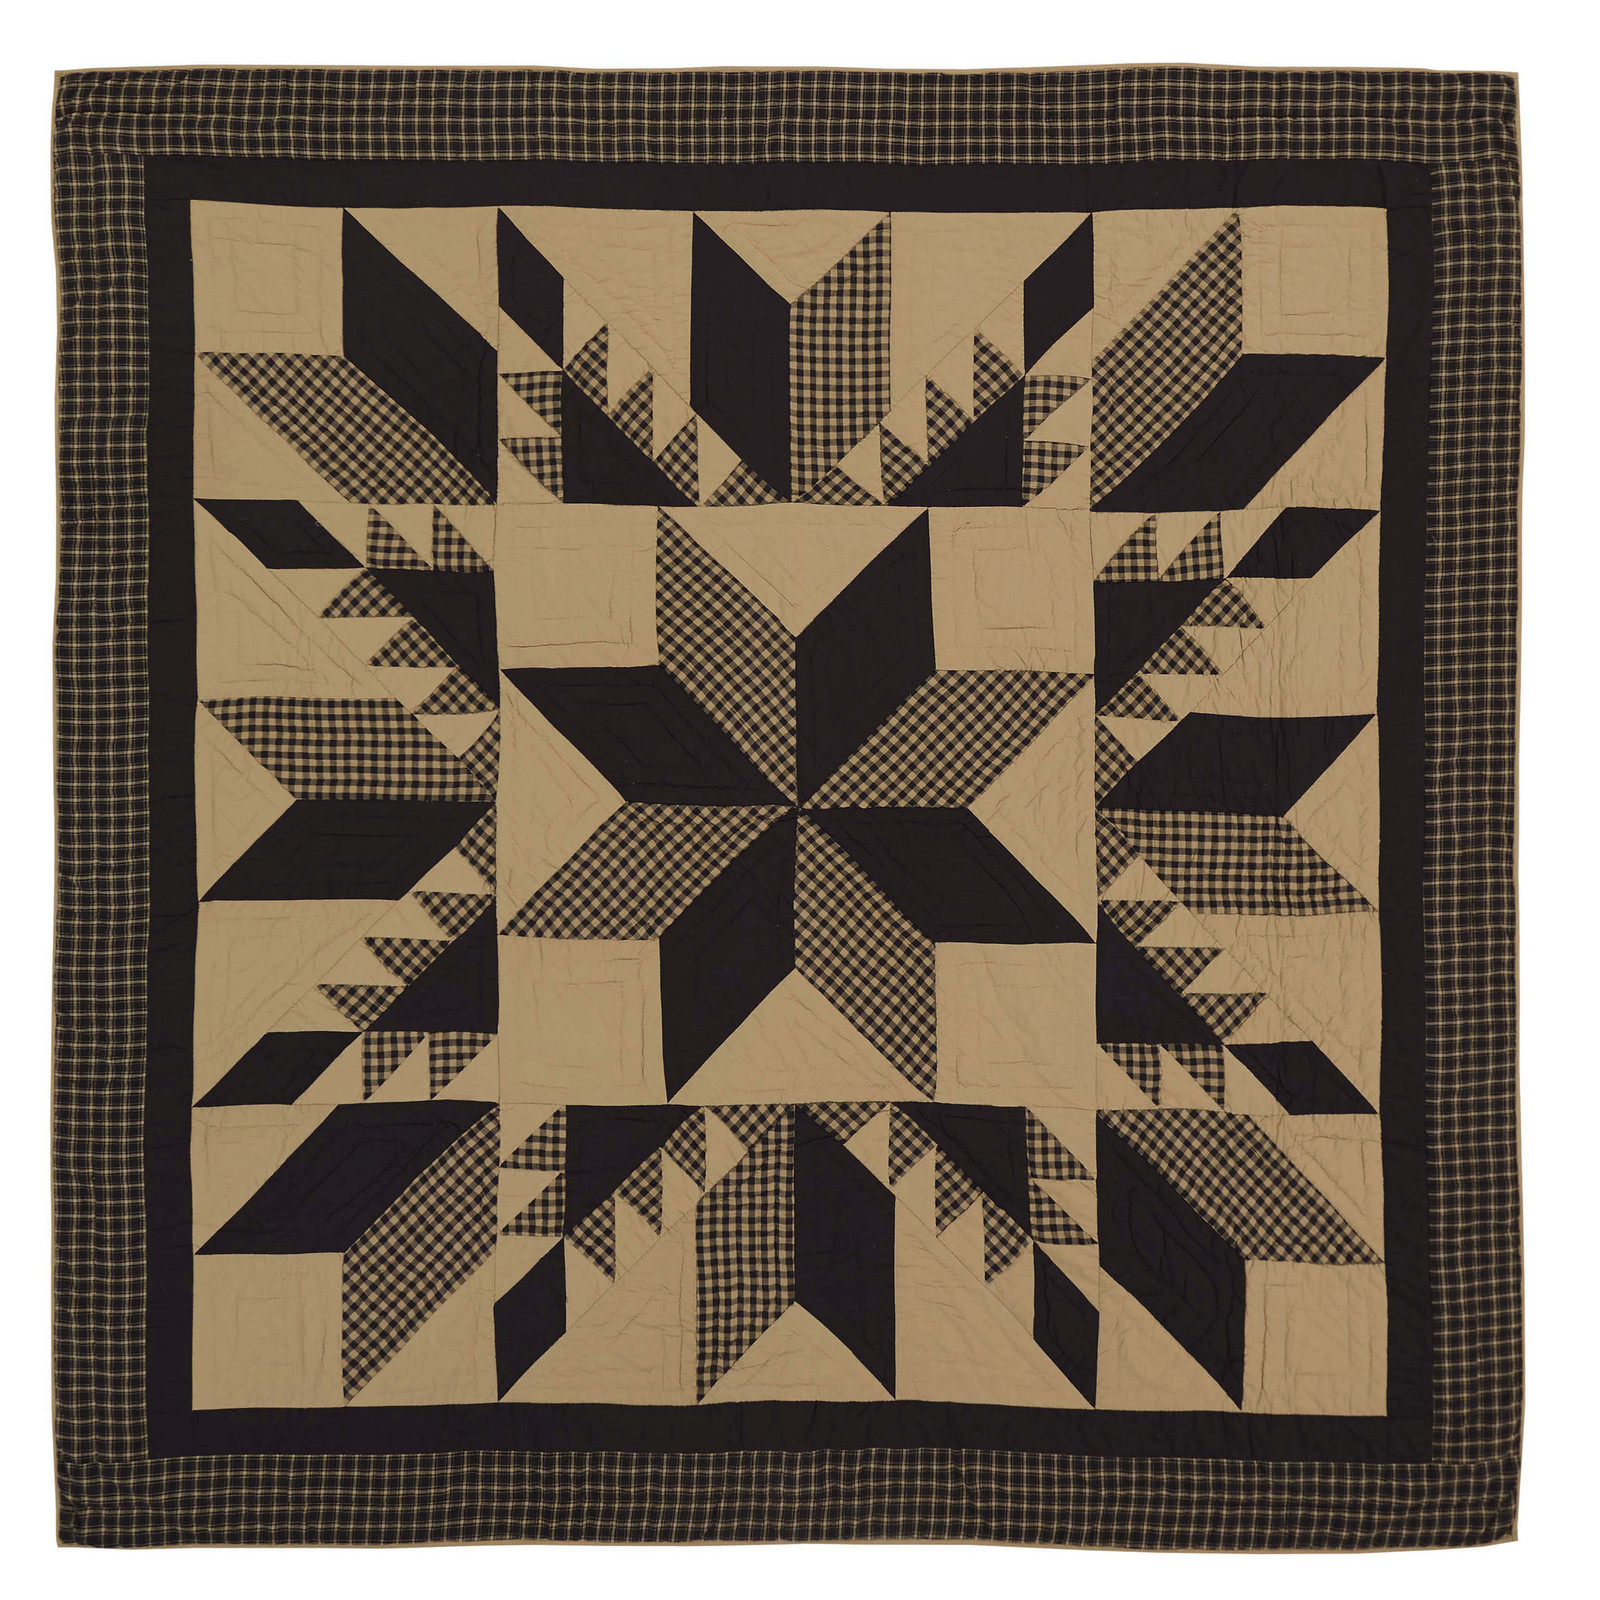 Dakota Star Luxury California King Quilt - Feathered Star Patchwork - Vhc Brands